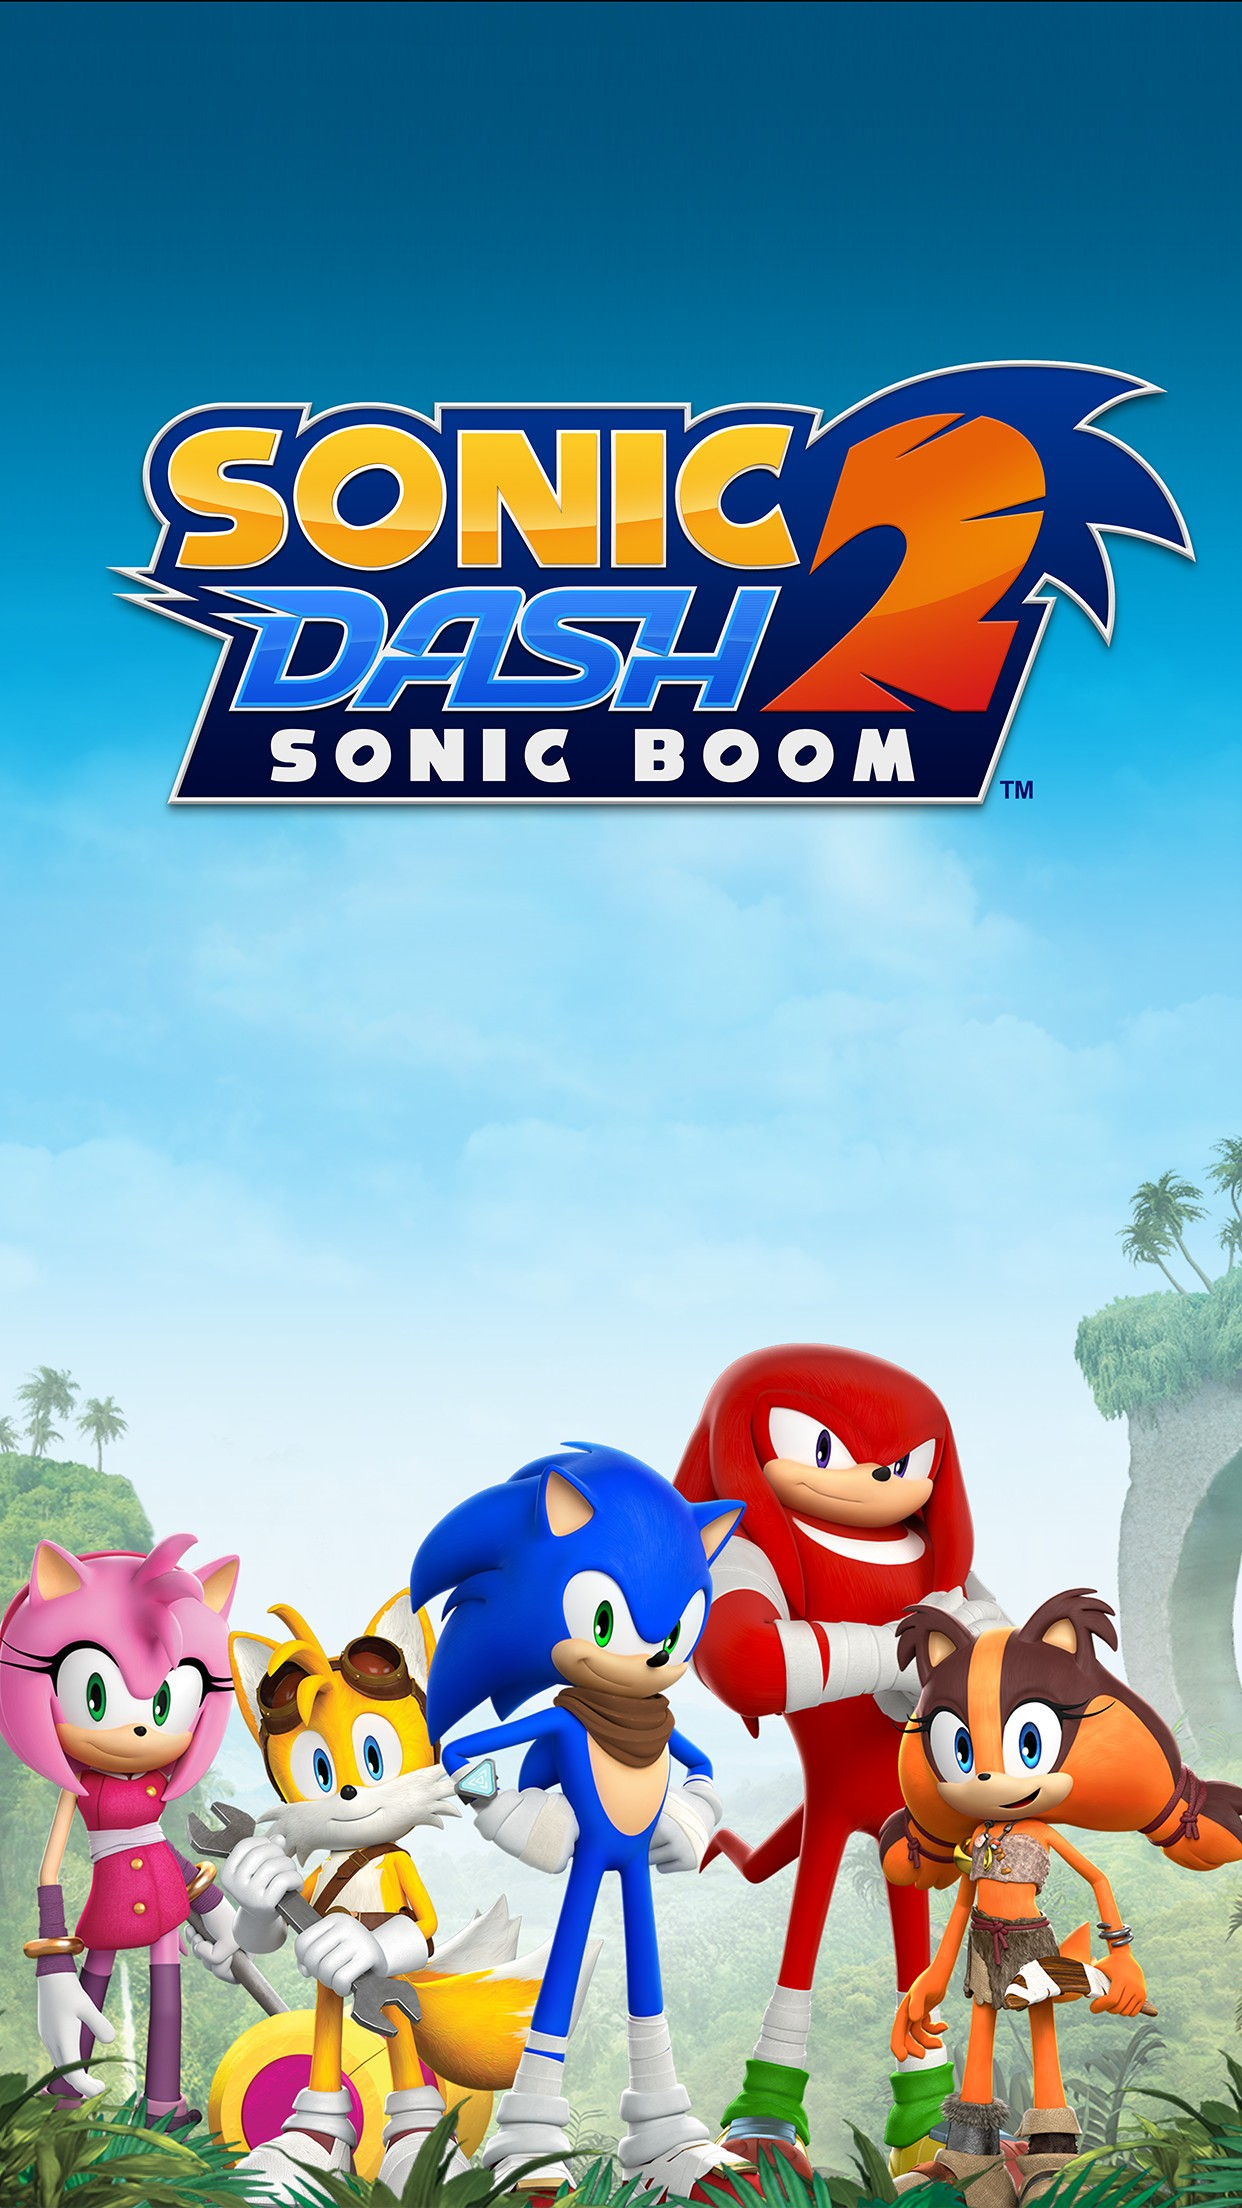 Sonic dash 2 sonic boom 1. 7. 9 apk + mod for android.